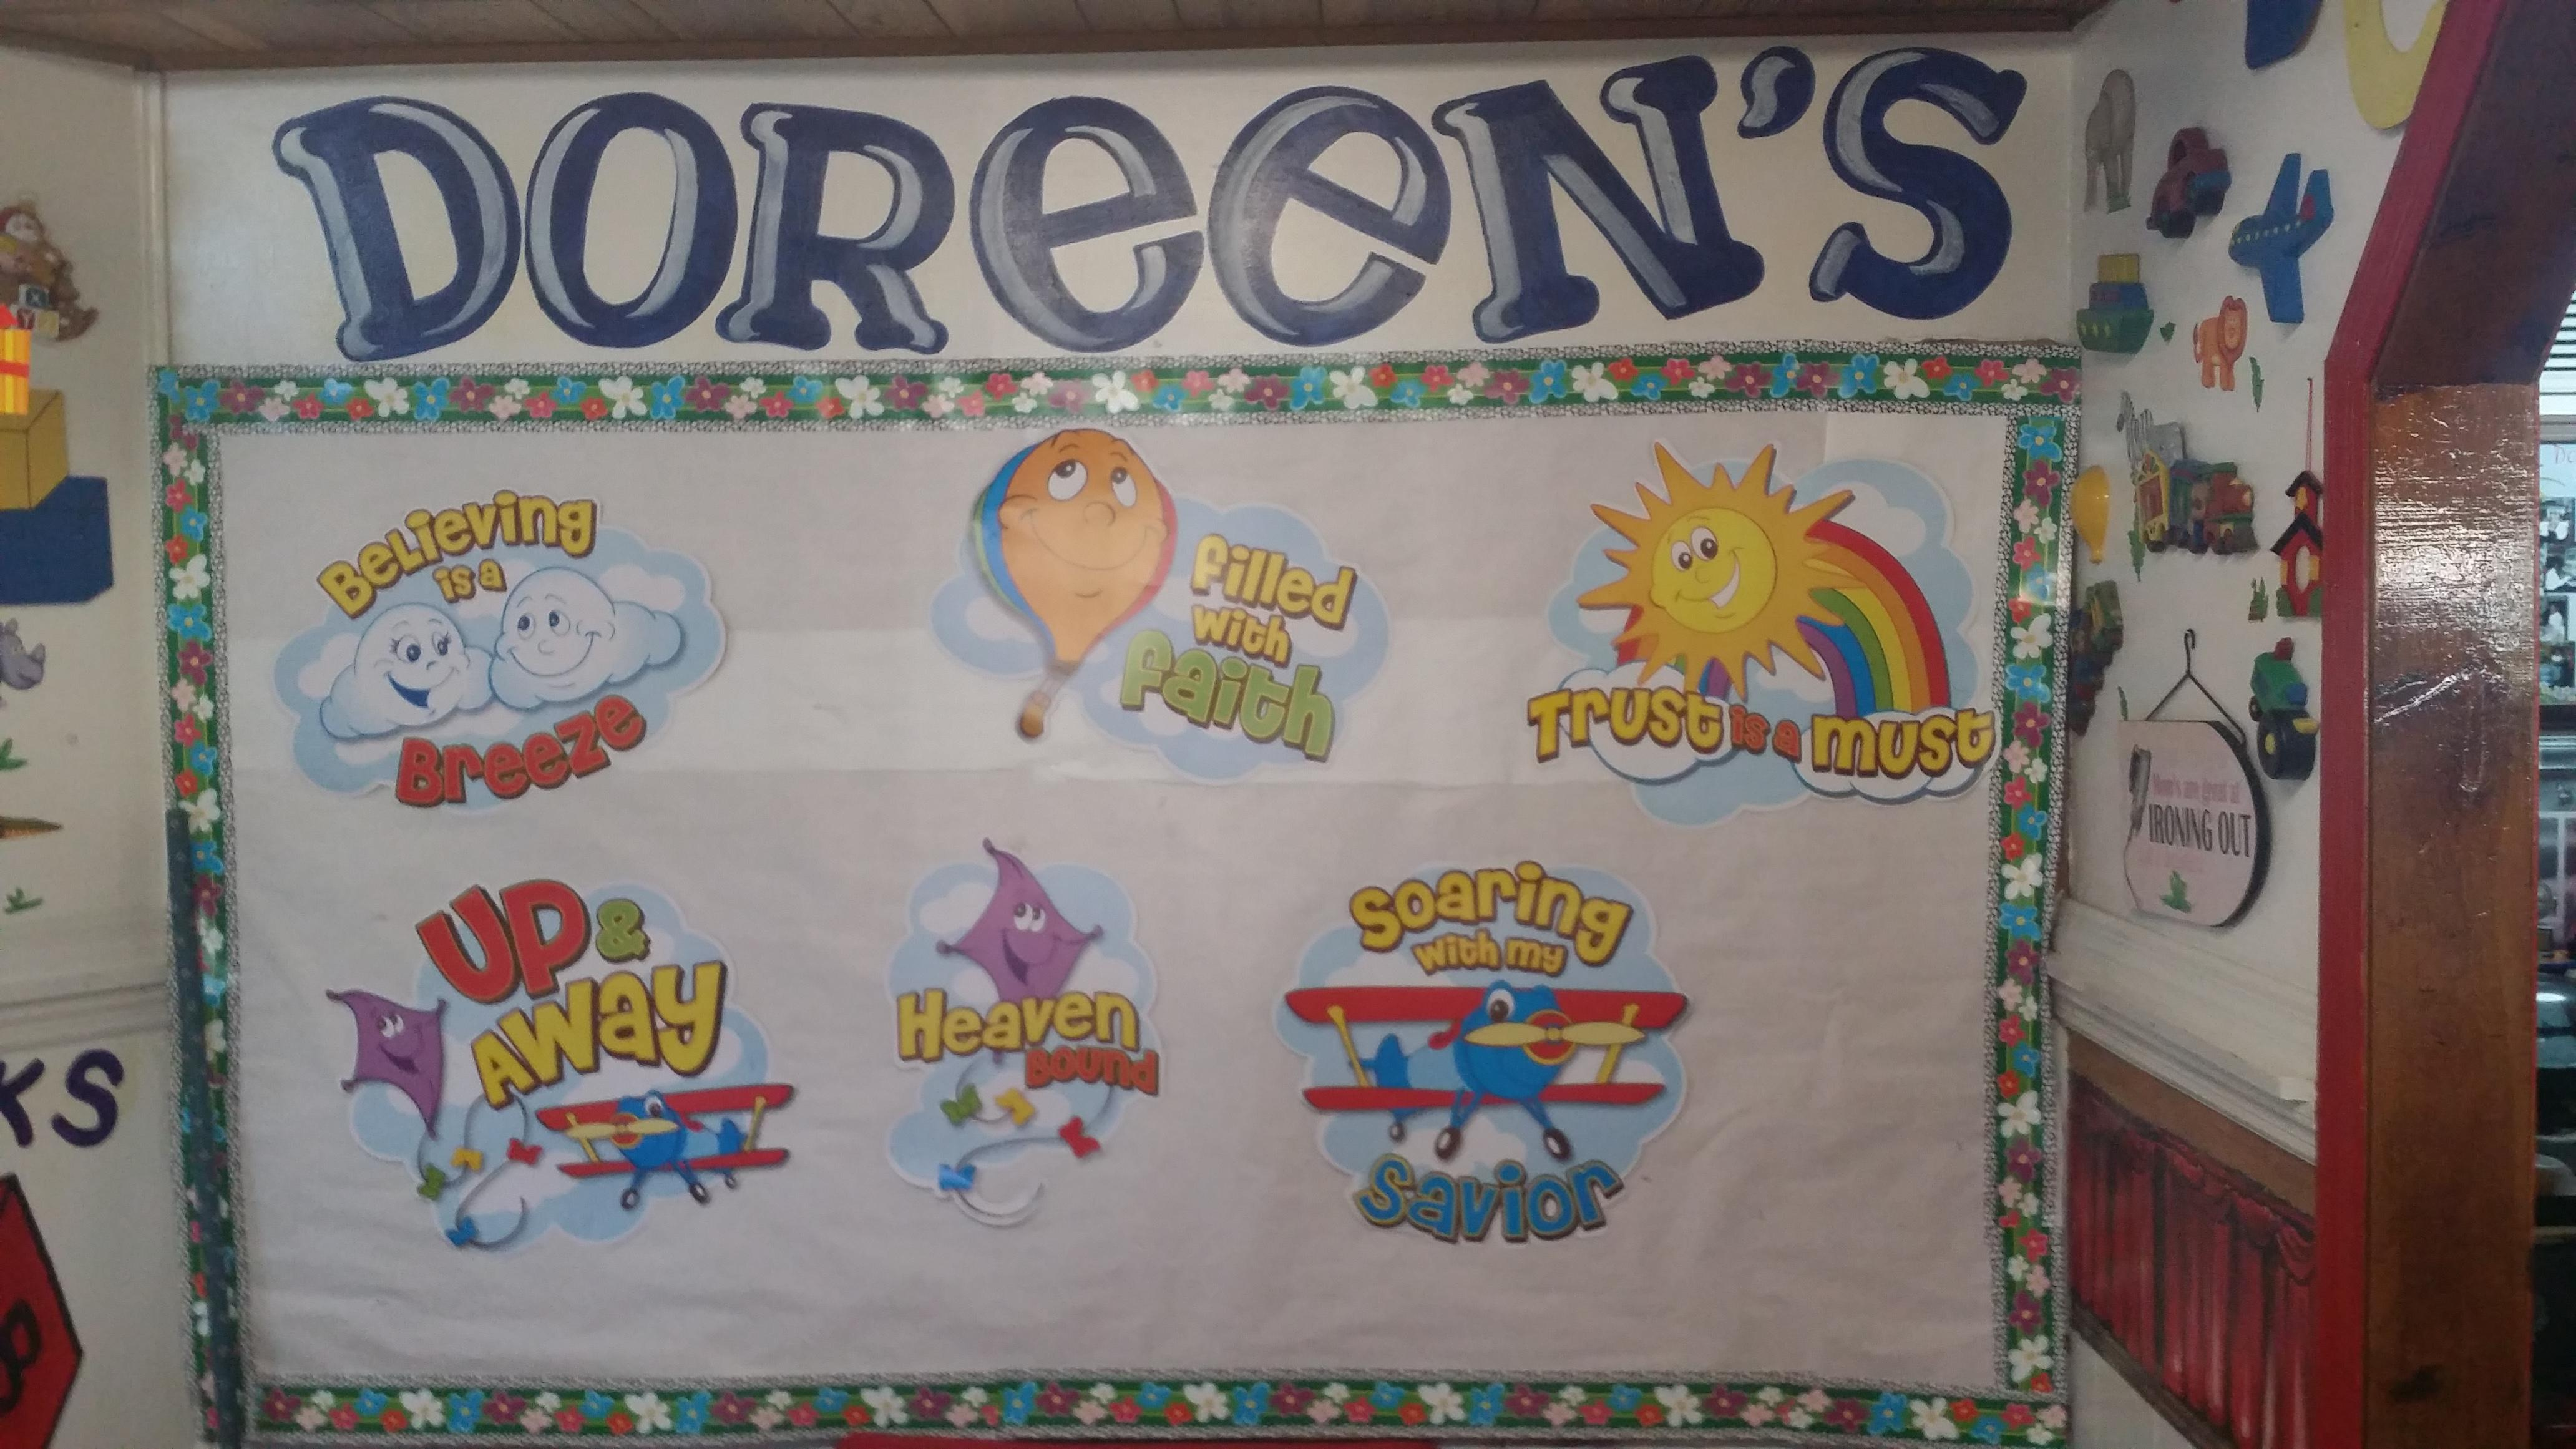 Doreen's Nursery School Inc.